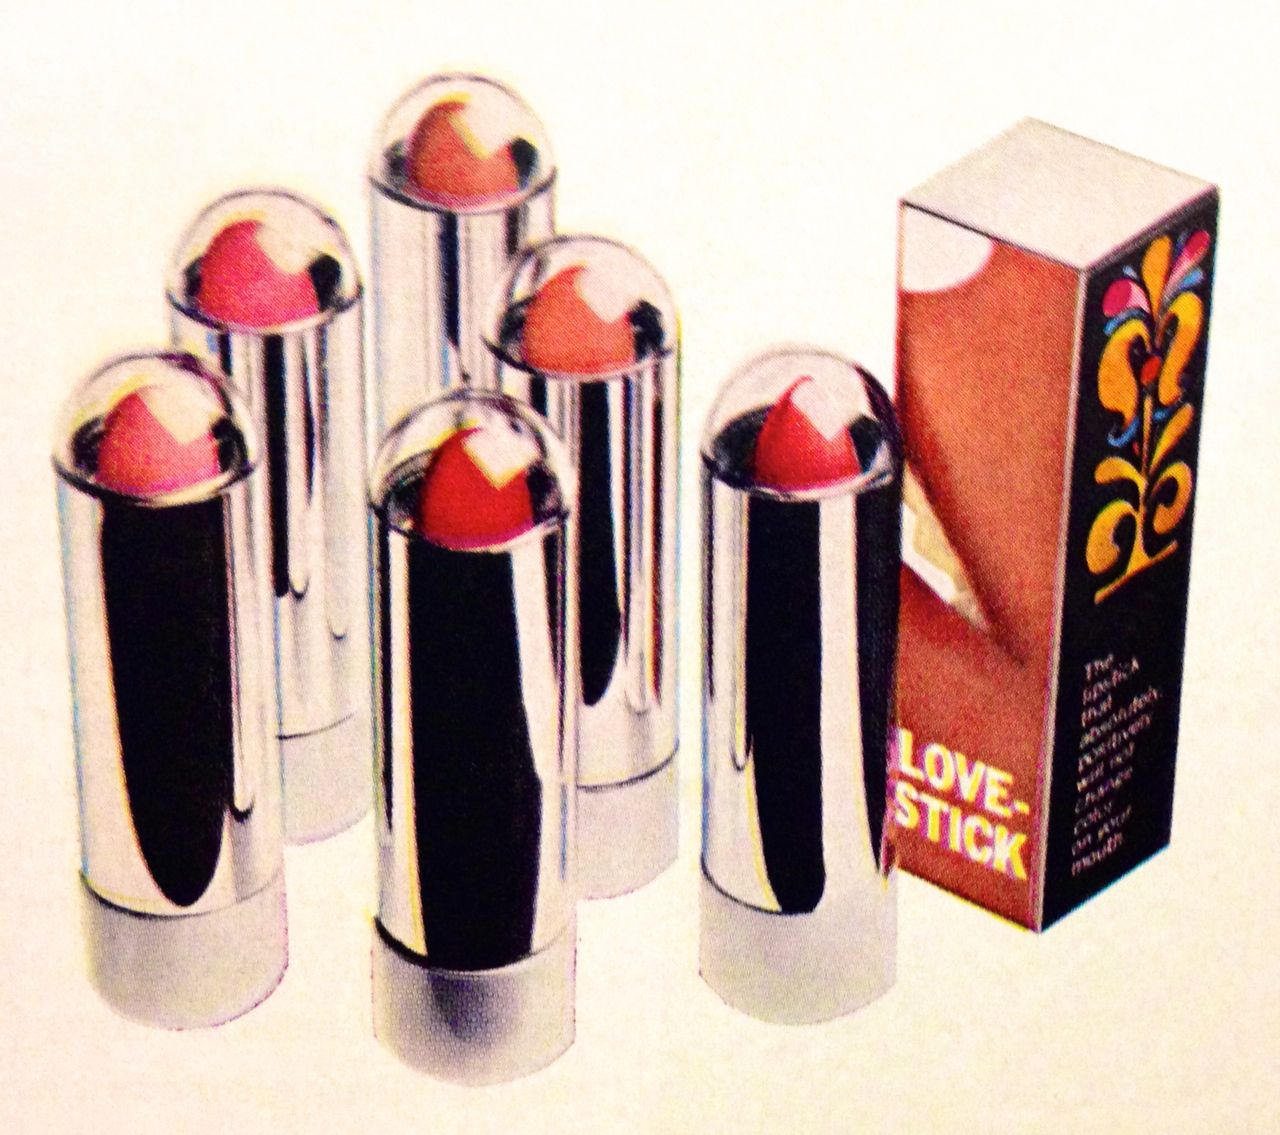 Love Cosmetics 'Sunlit Lovestick' Lipstick by Menley & James, 1969 |  Vintage cosmetics, Cosmetics and toiletries, Love cosmetics